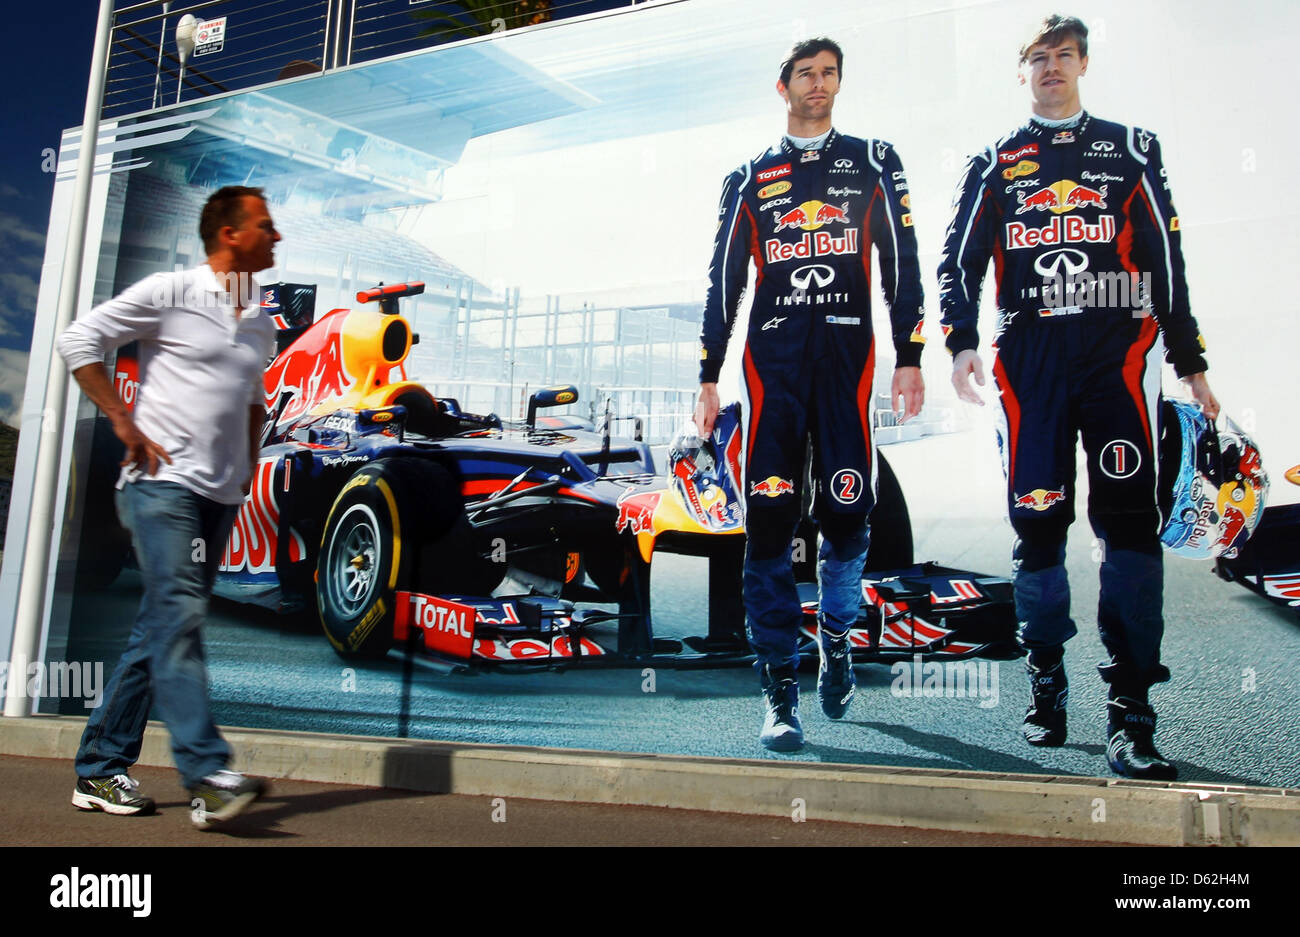 A man walks in front of a billboard on the floating motor home of Red Bull with the images of German Formula One driver Sebastian Vettel (L) and Mark Webber (R) prior to the Formula One Grand Prix of Monaco in Monte Carlo, Monaco, 22 May 2012. The Grand Prix will take place on 27 May. Photo: Jens Buettner dpa Stock Photo